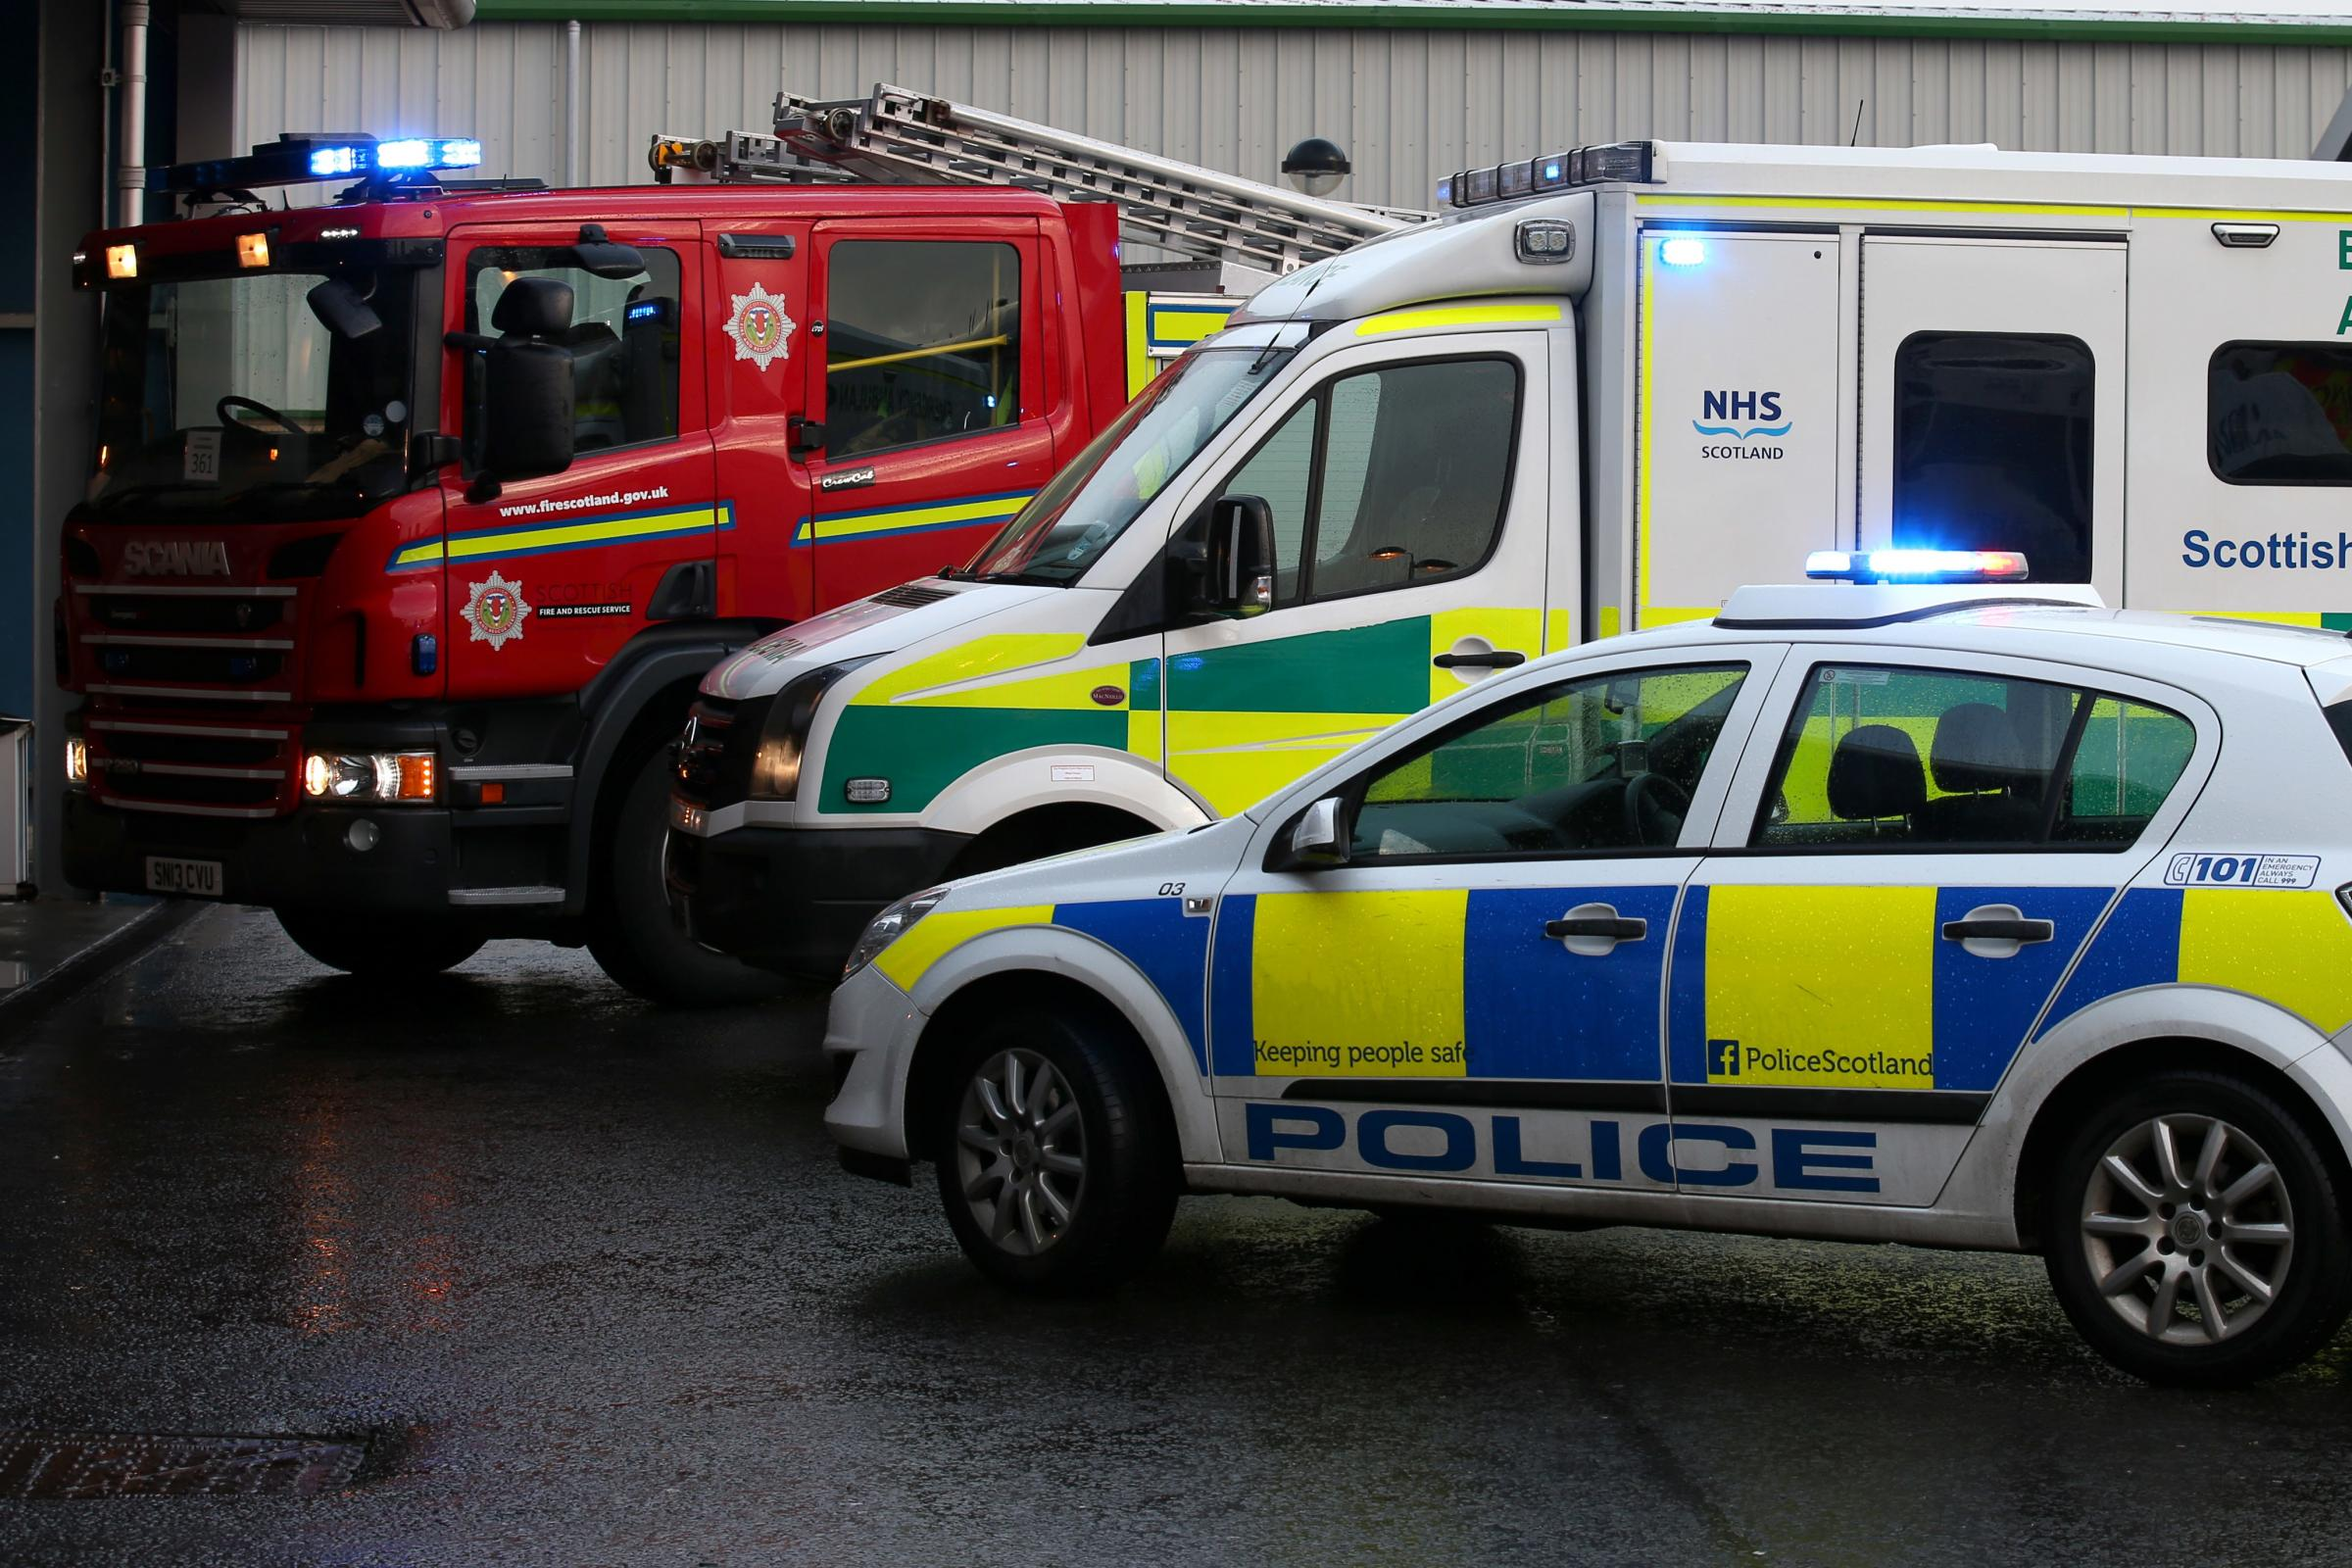 Emergency service vehicles